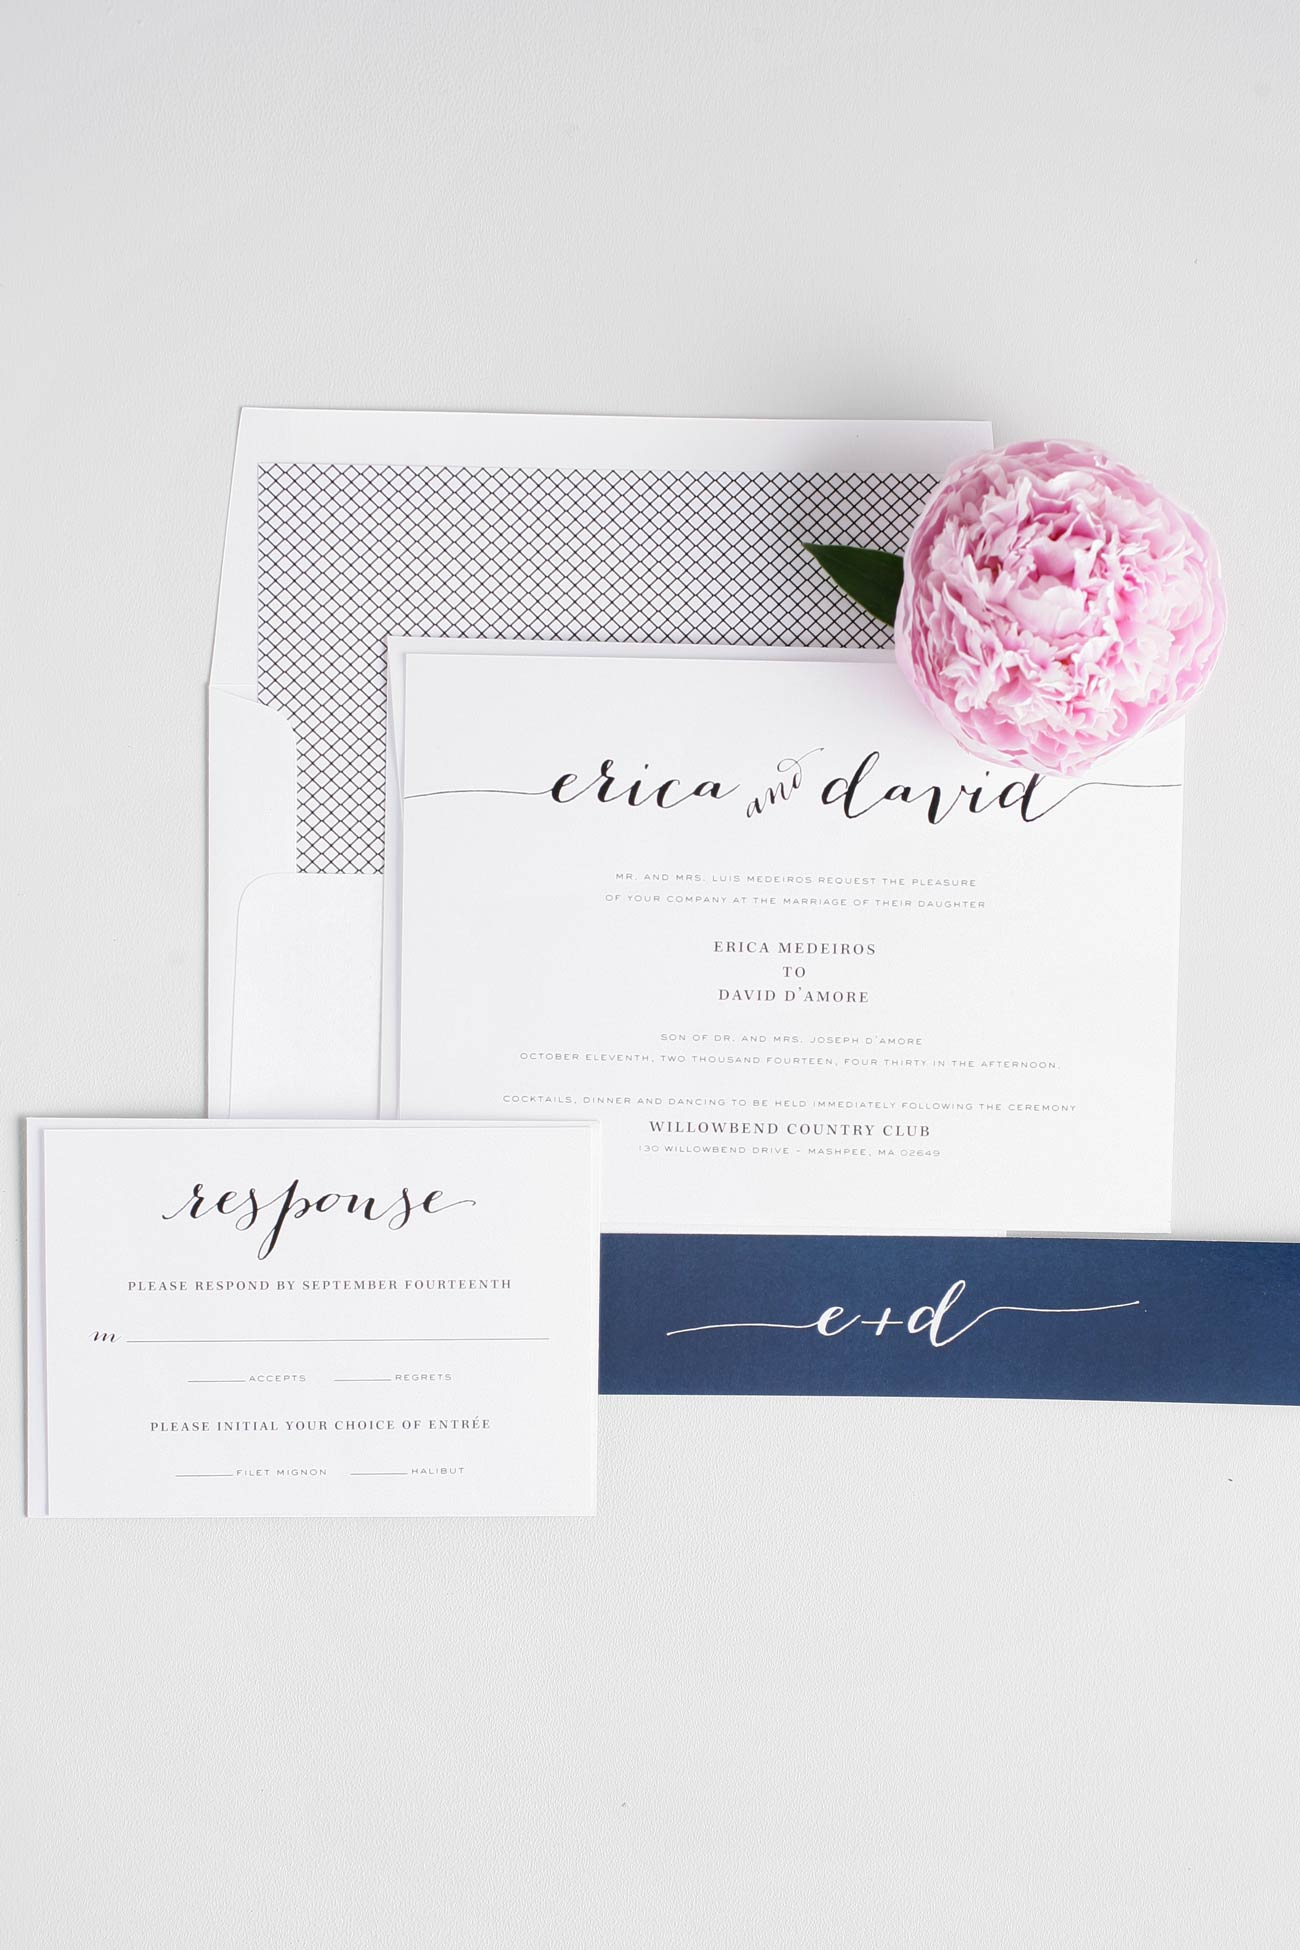 Rustic script wedding invitations